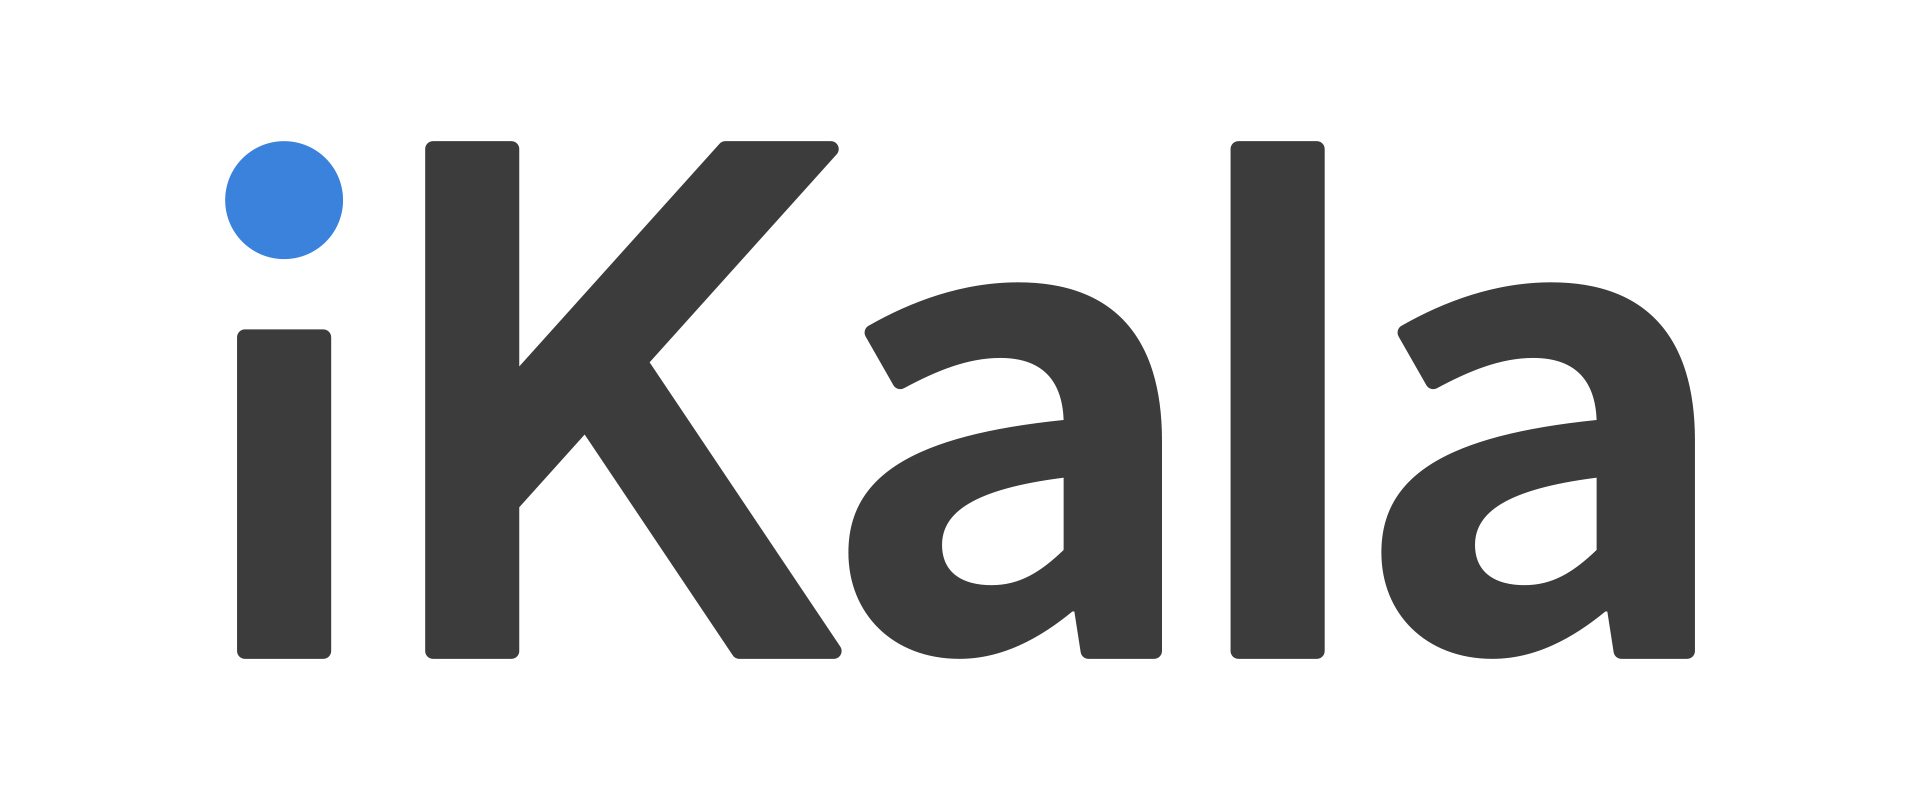 愛卡拉 iKala  is hiring on Meet.jobs!